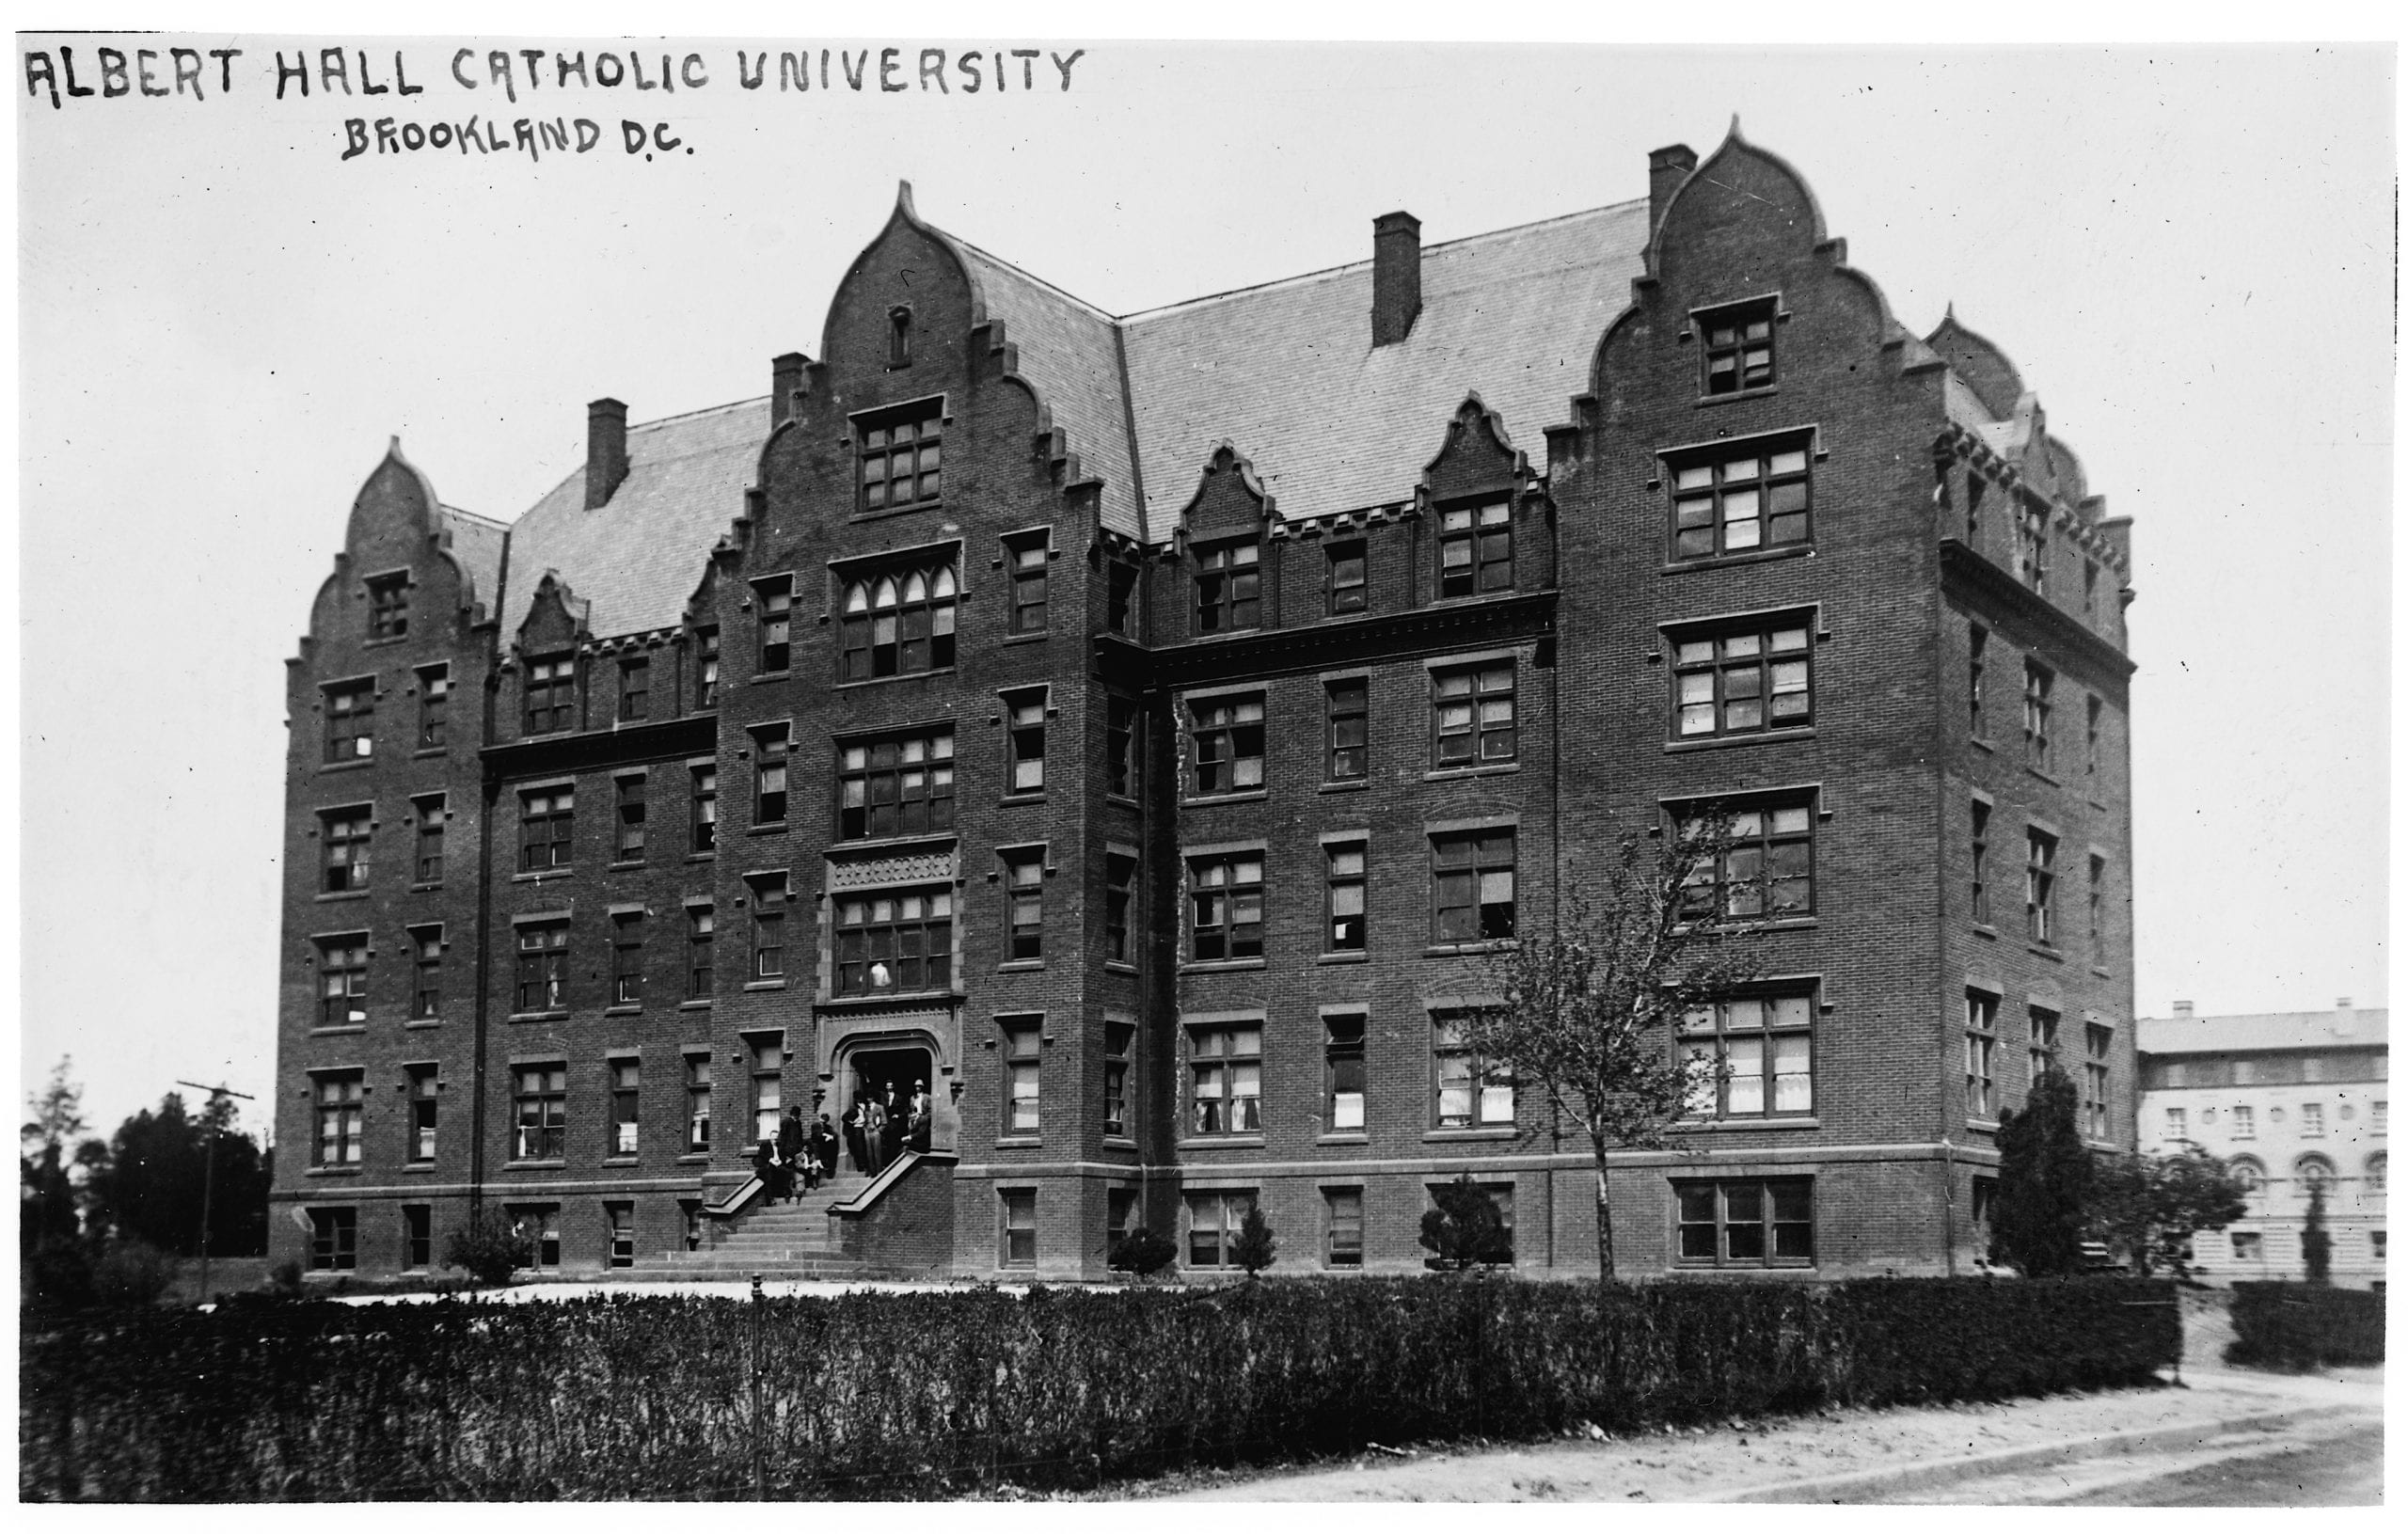 Albert Hall at Catholic University in the 1910s